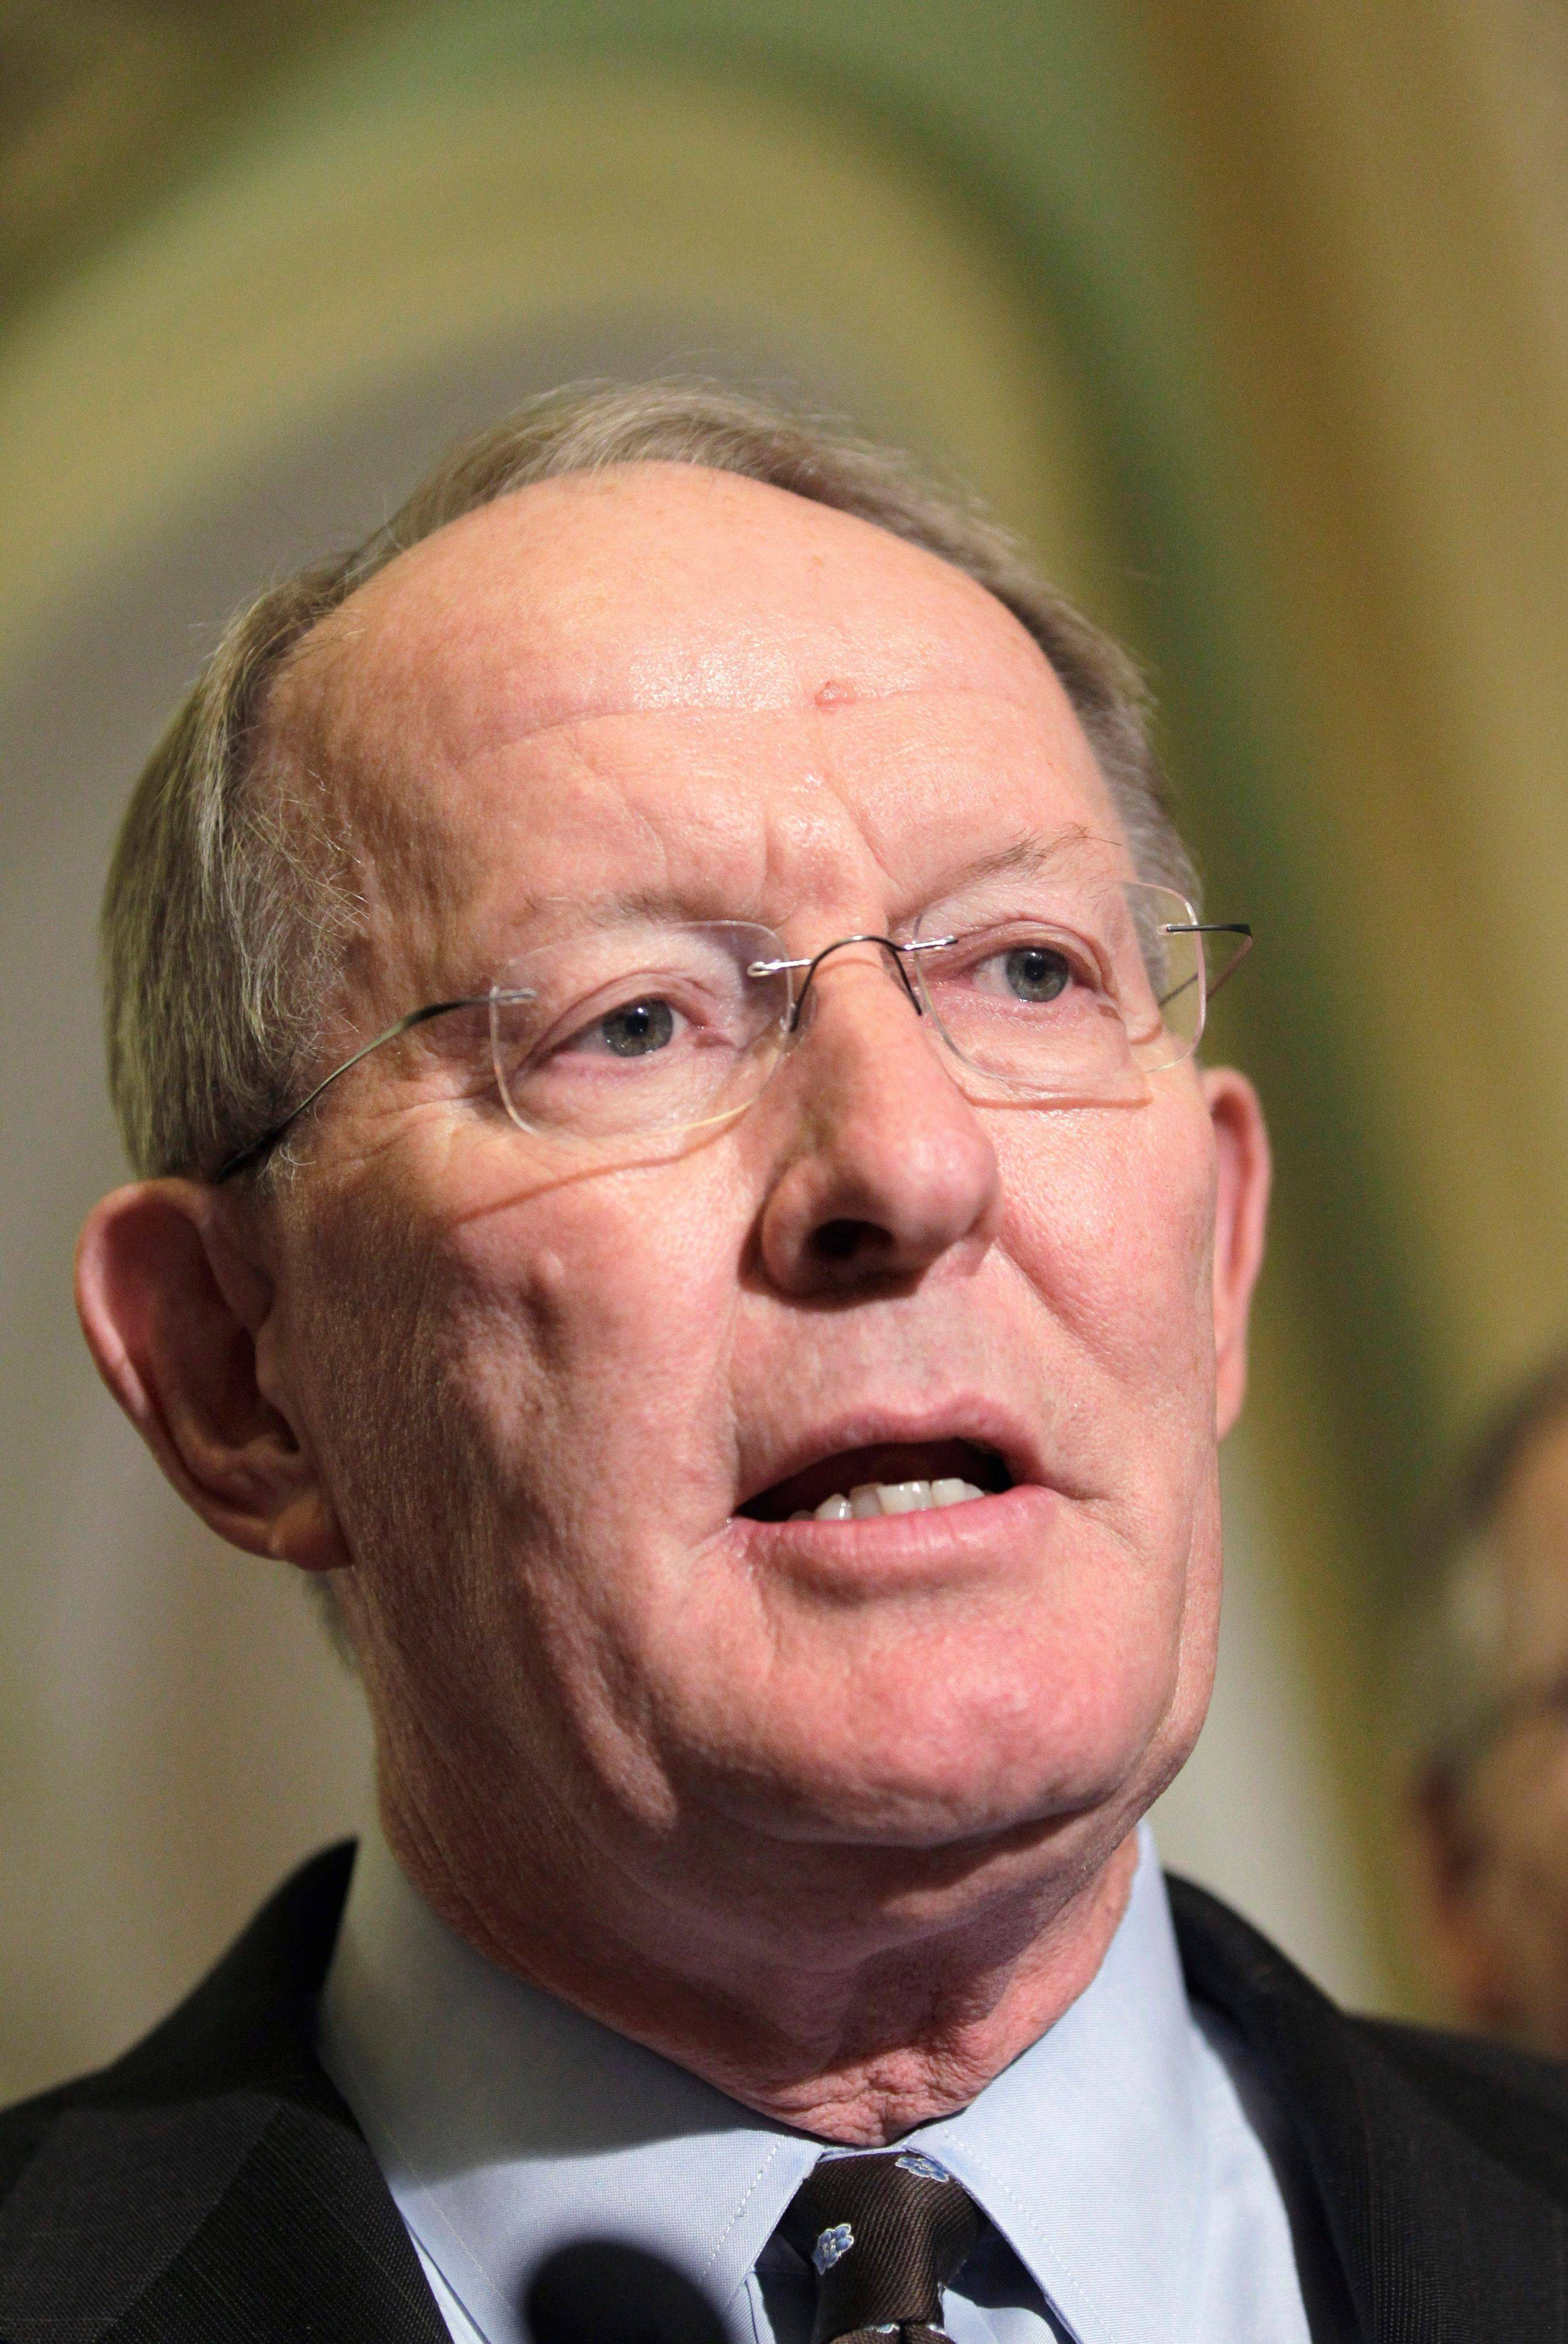 Sen. Lamar Alexander, R-Tenn., the number three Senate Republican leader, is seen on Capitol Hill in Washington. Alexander, chairman of the Senate Republican Conference for four years, said he will step down from his leadership post but remain in the Senate and run for re- election in 2014.